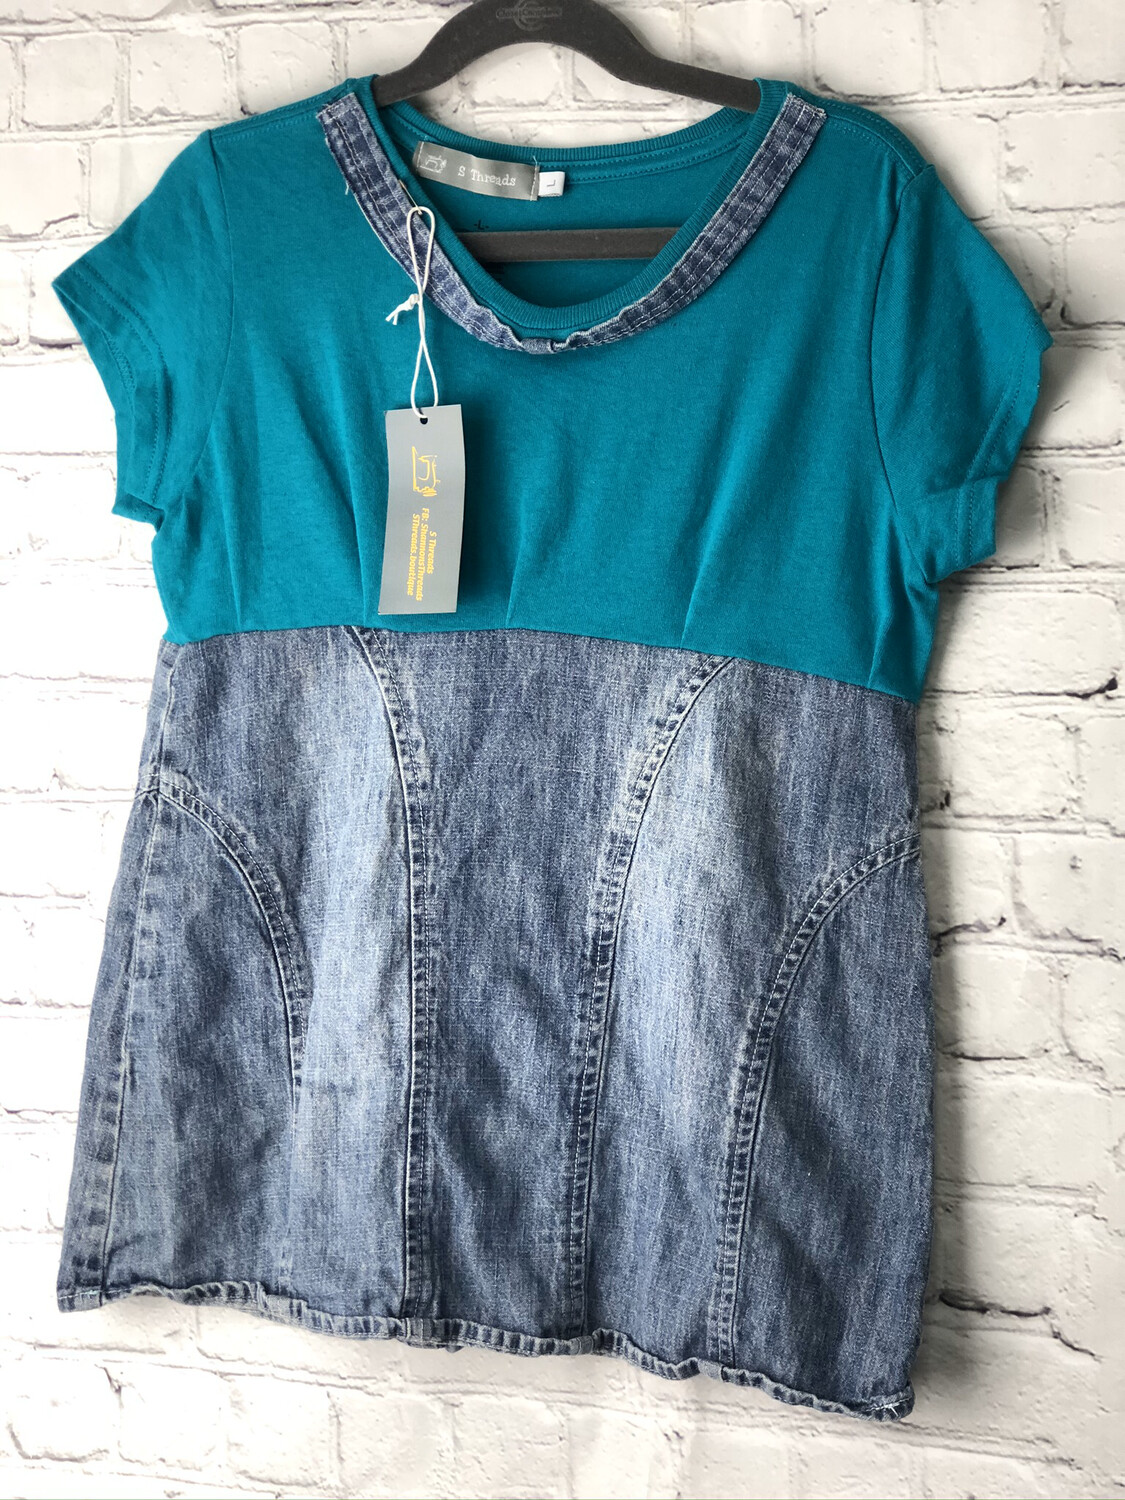 Child Teal Jean Upcycled Top